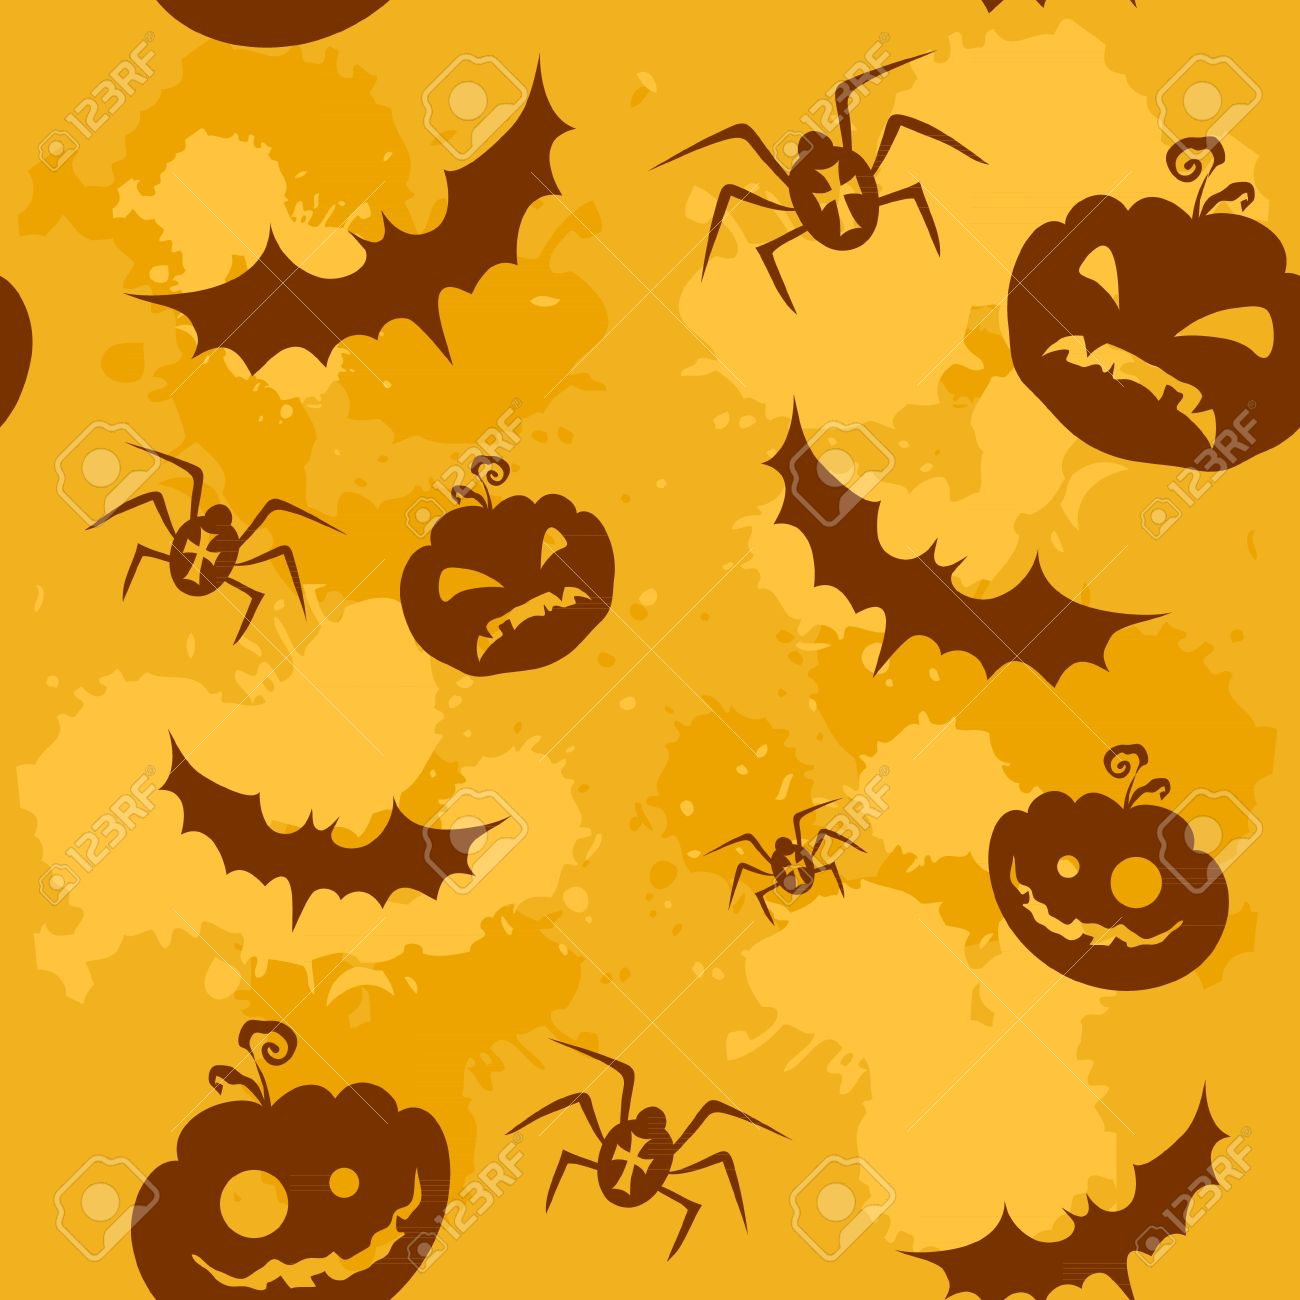 halloween pumpkins bats and spiders grungy seamless background